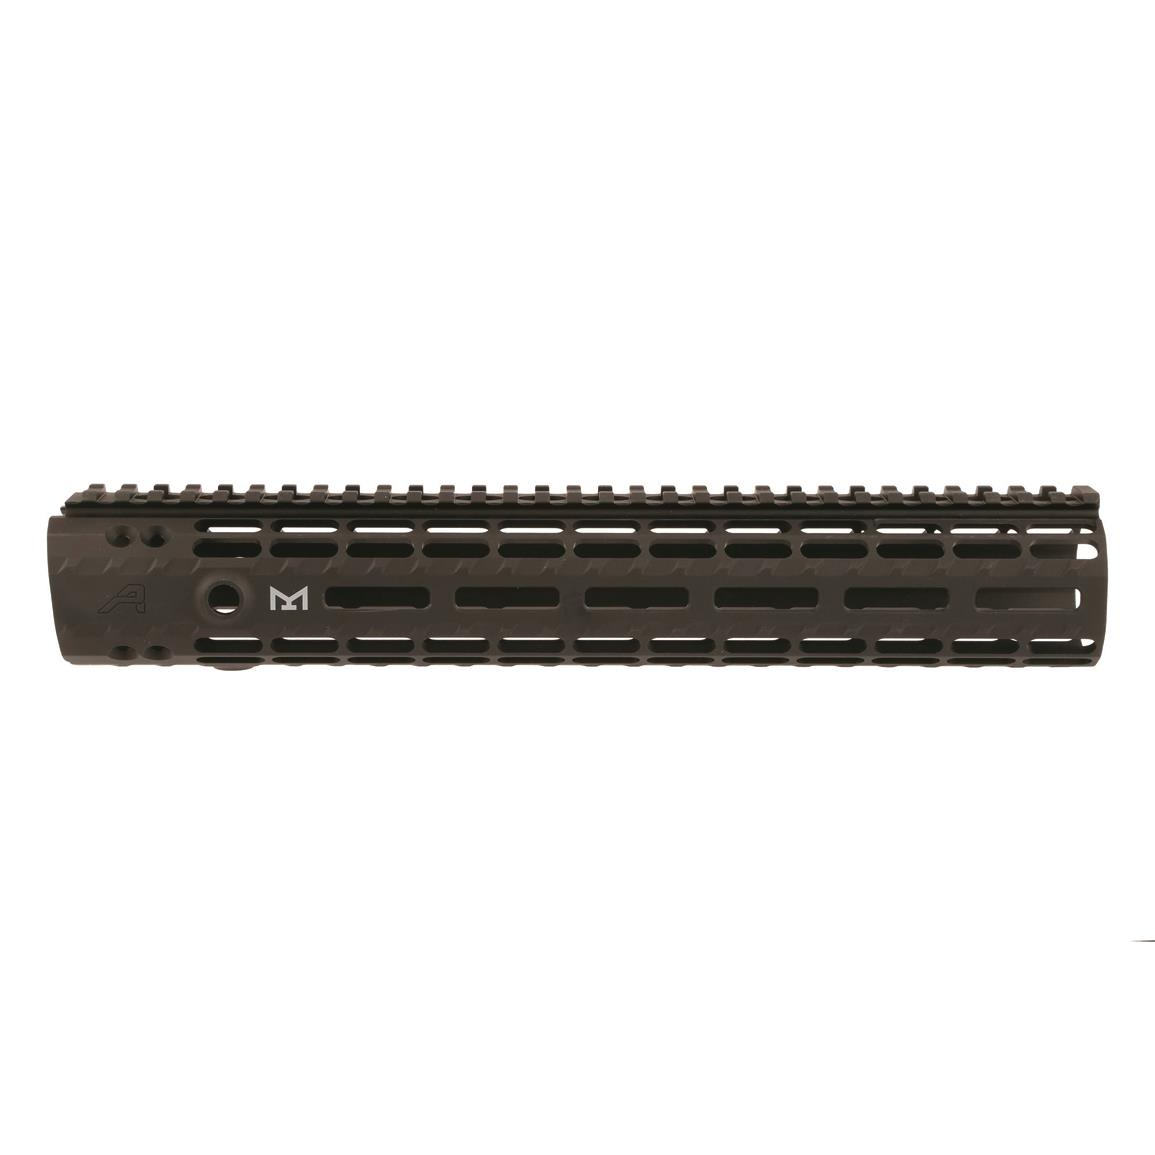 "Aero Precision AR-15 Gen2 Enhanced 12"" Free-float M-LOK Handguard"